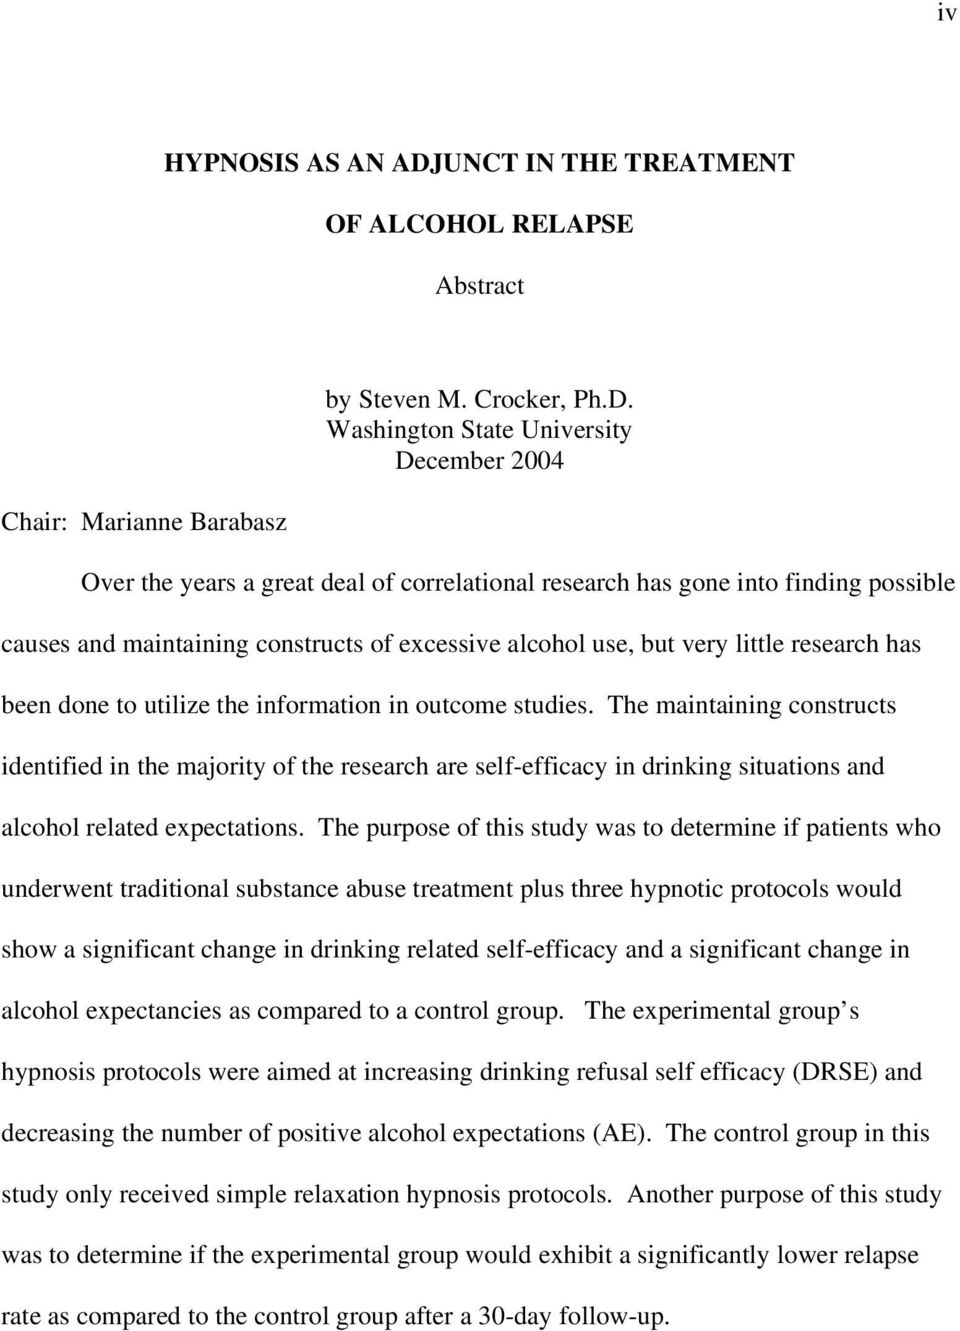 Washington State University December 2004 Over the years a great deal of correlational research has gone into finding possible causes and maintaining constructs of excessive alcohol use, but very